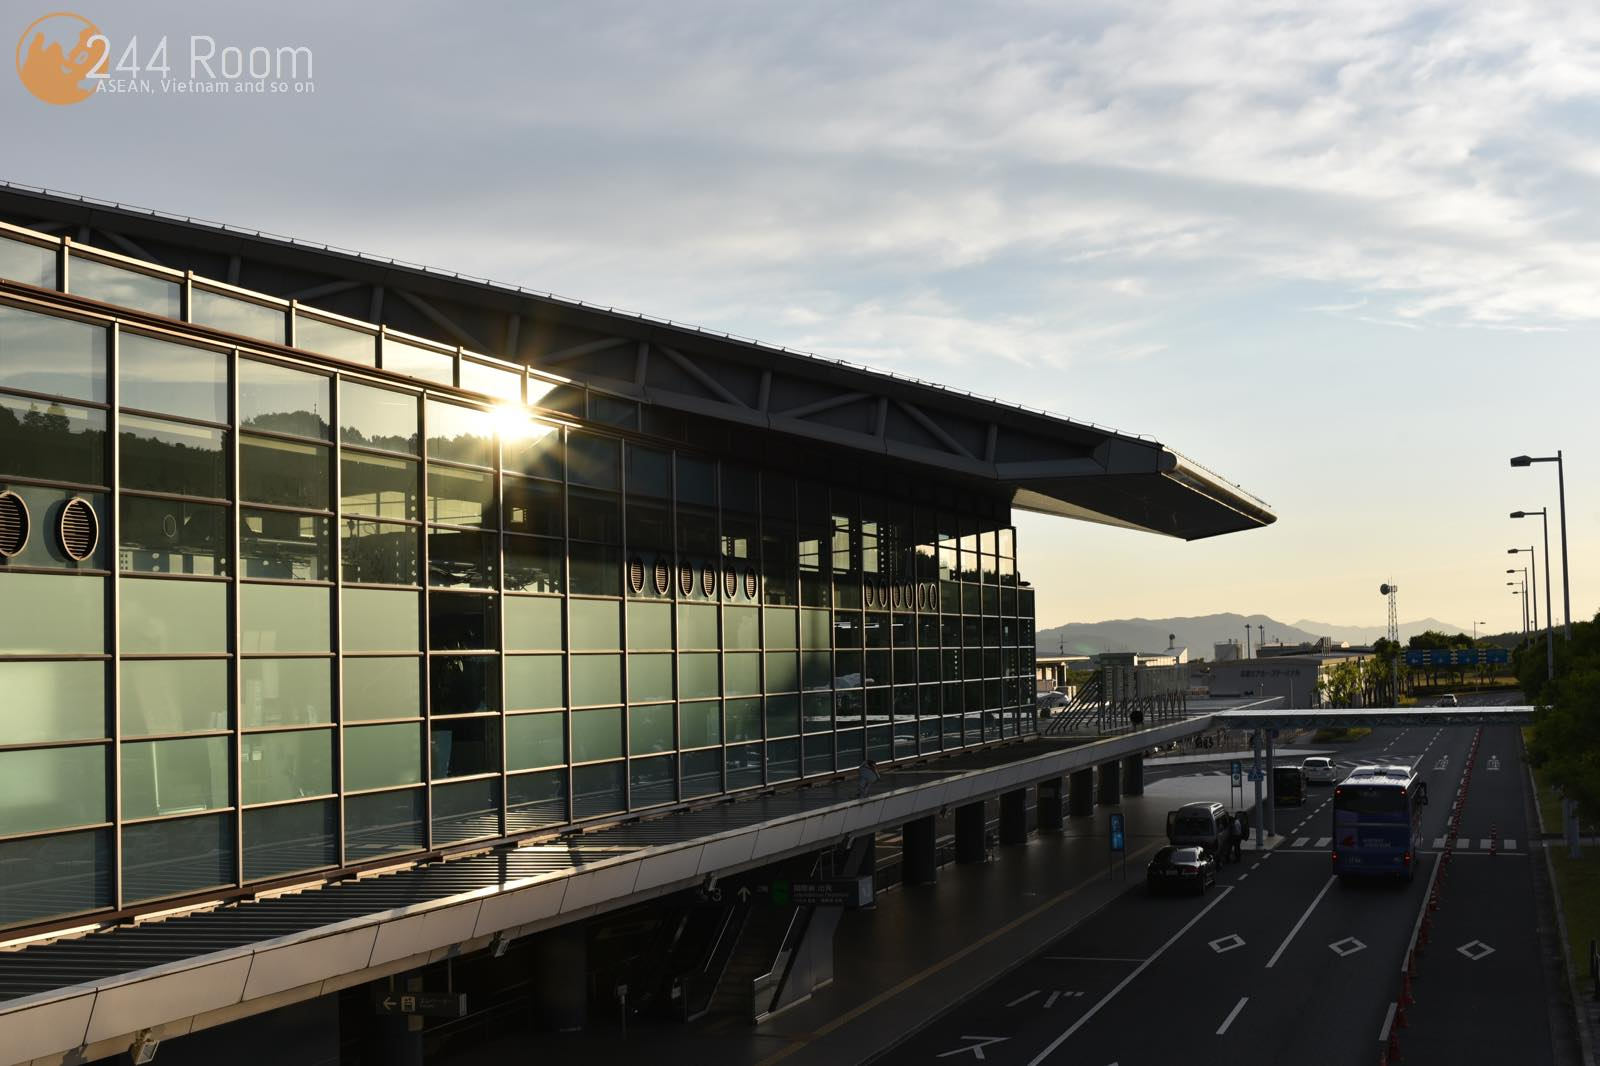 広島空港 Hiroshima International Airport